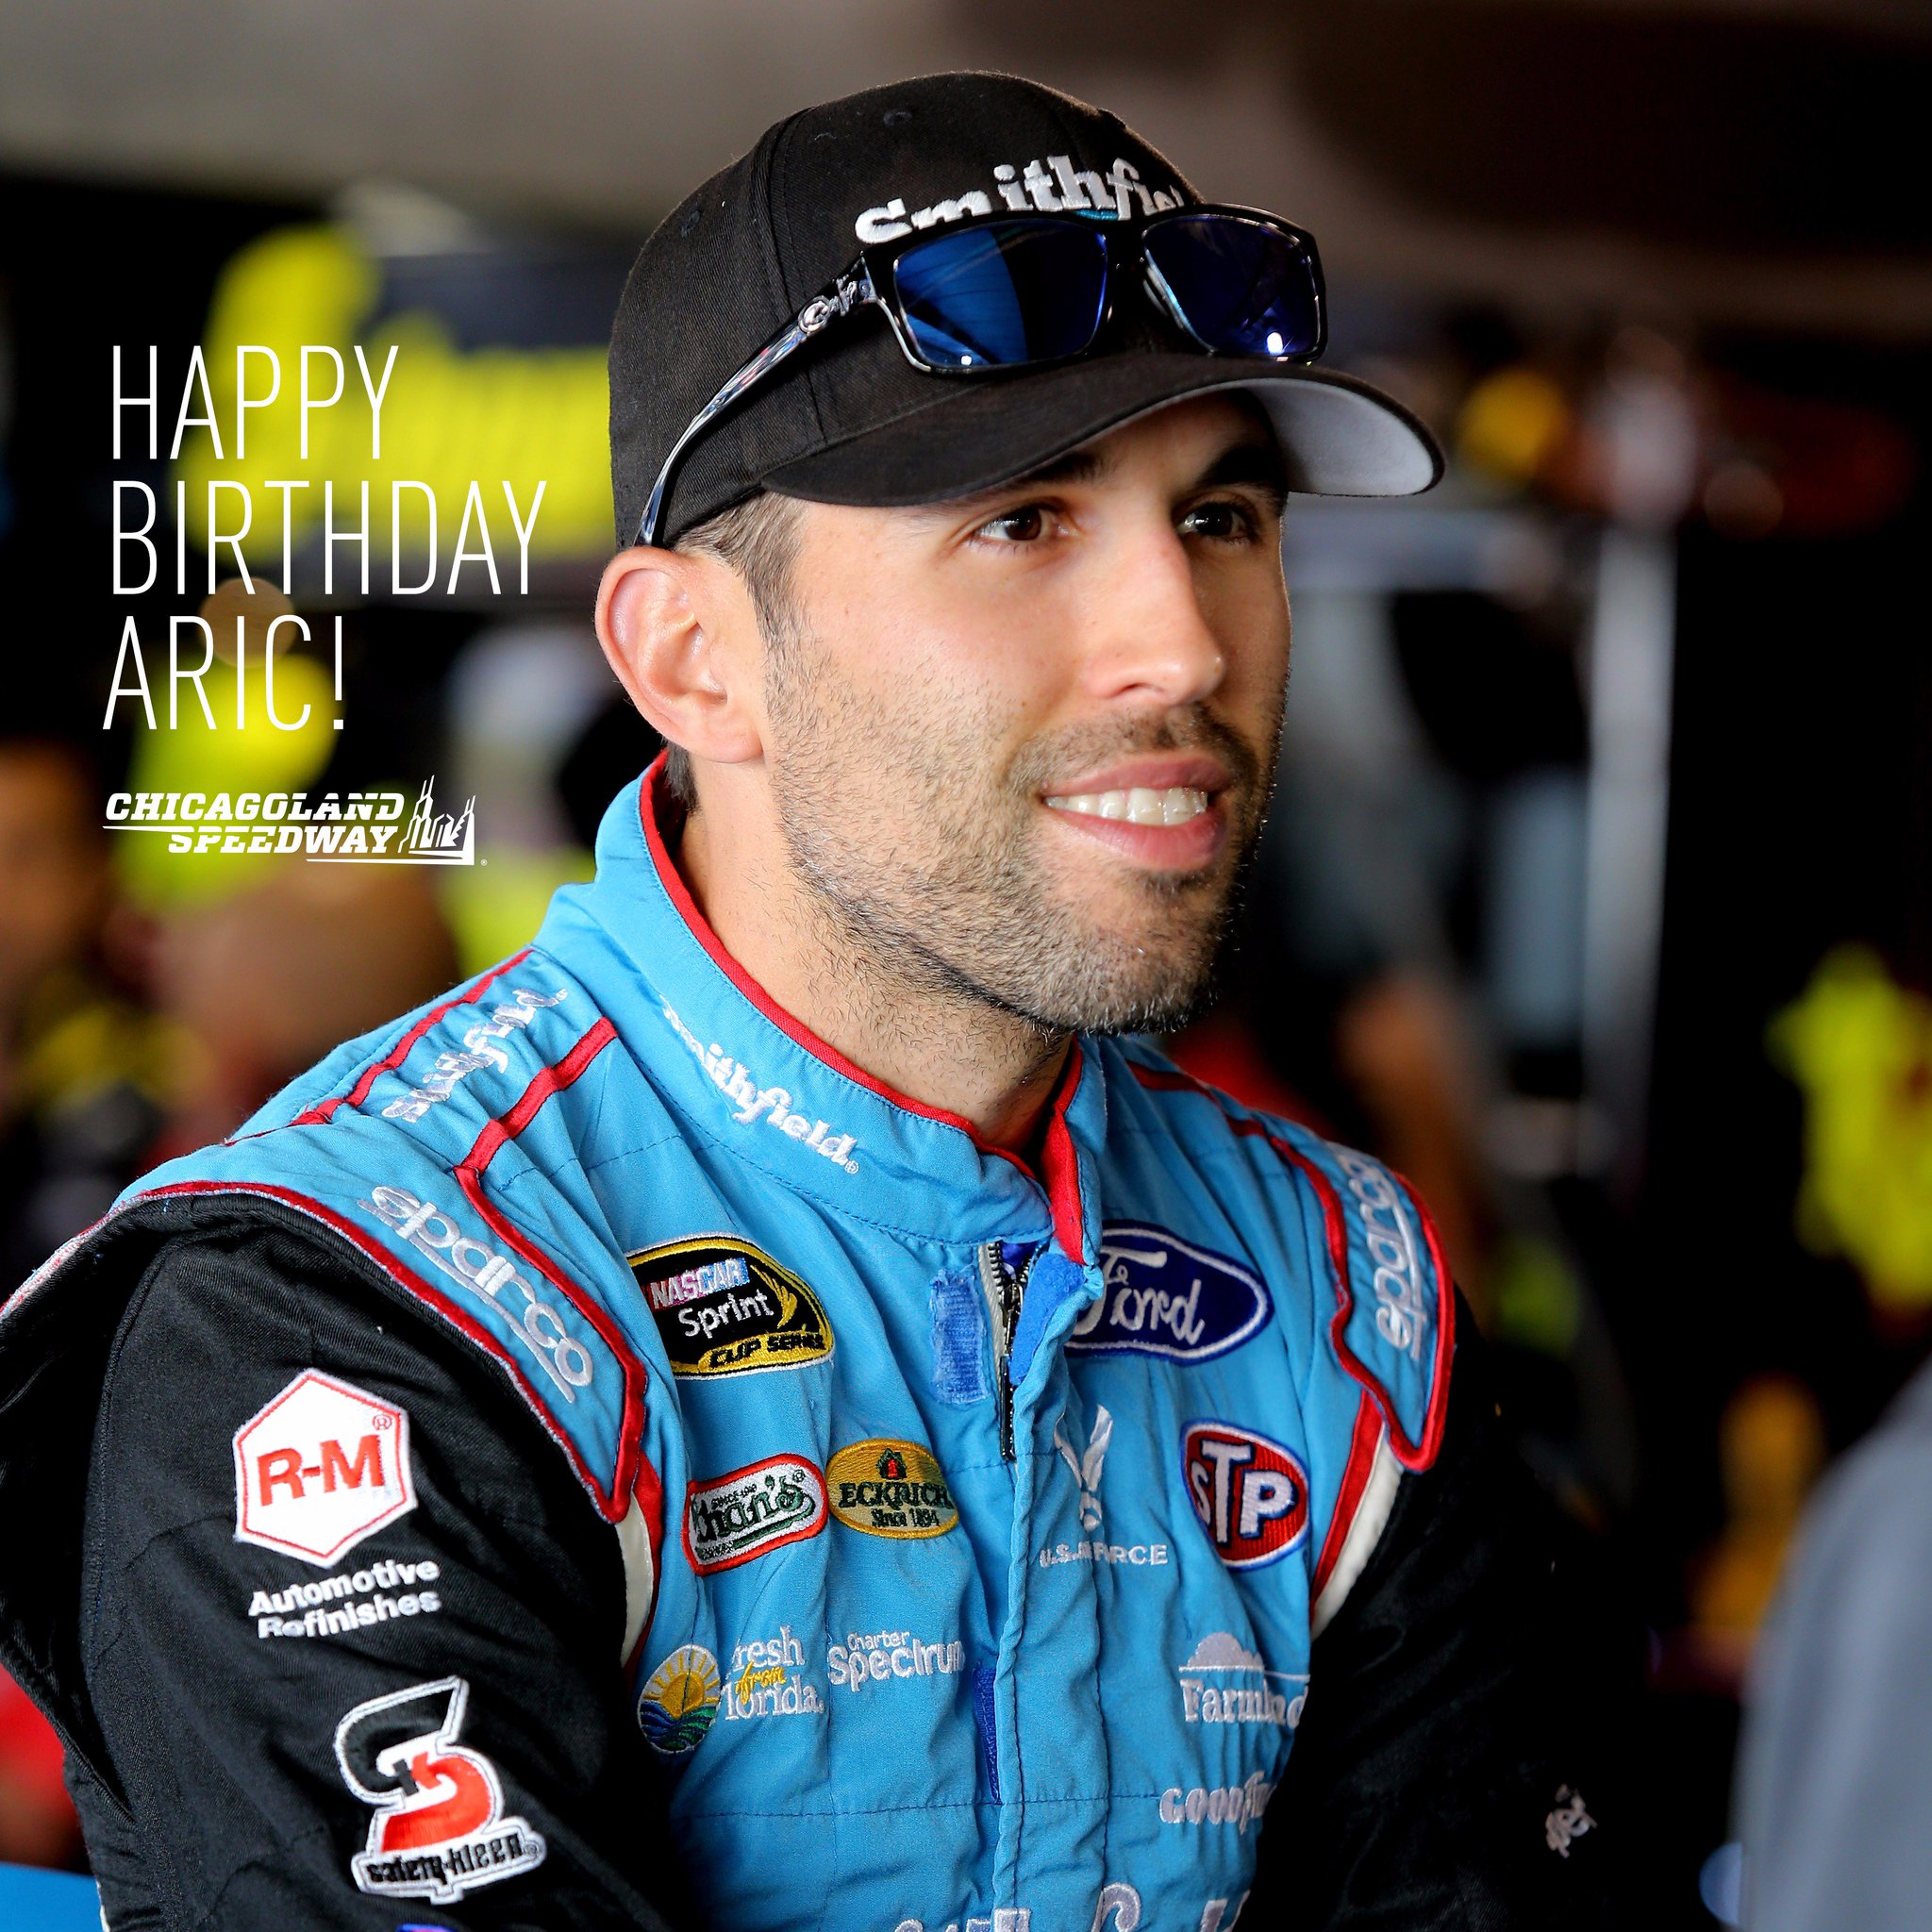 Help us wish the driver of the 43 a very HAPPY BIRTHDAY!  Have a great one,